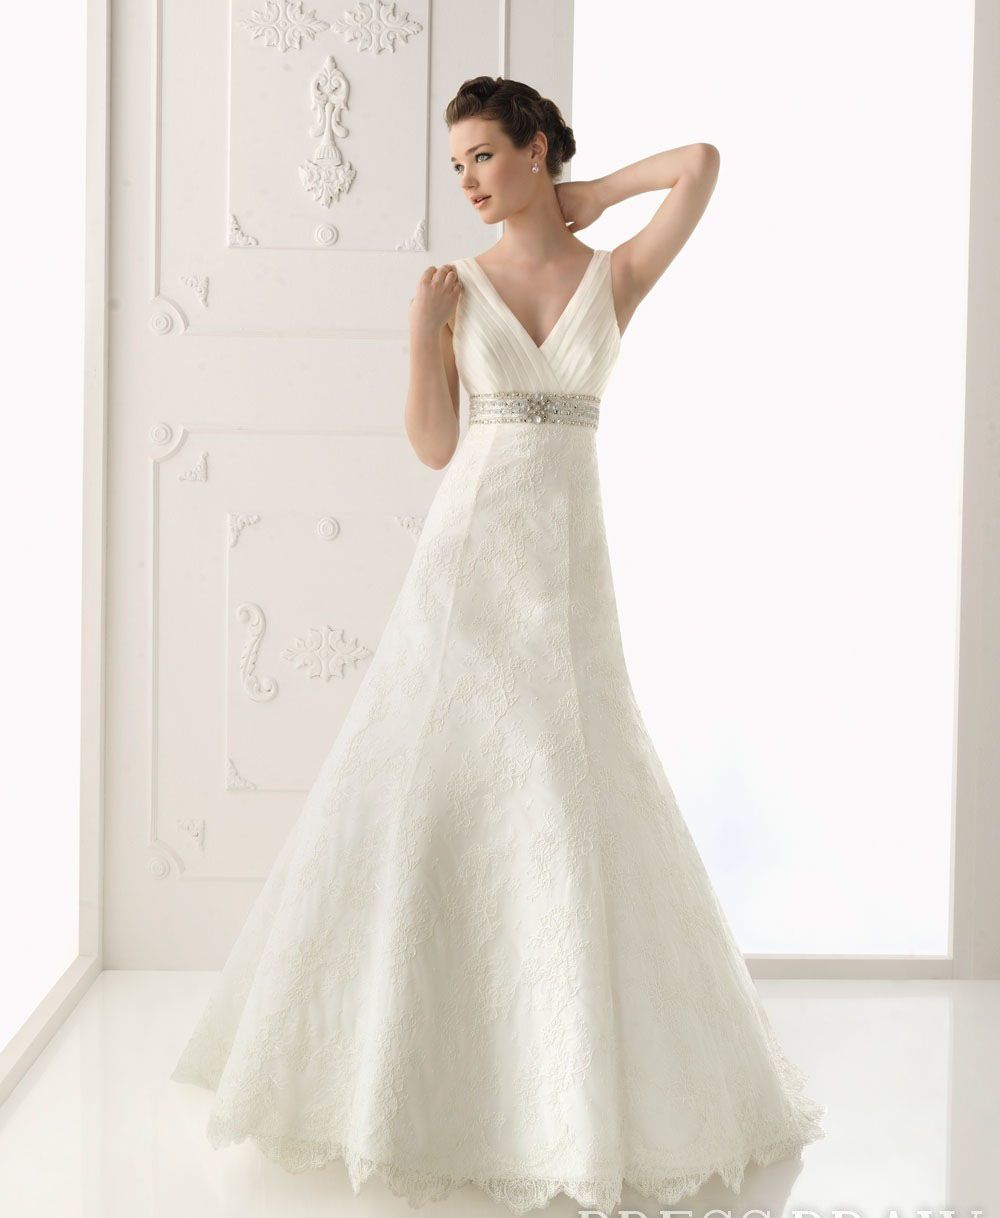 Vneck wedding dresses bridal dresses wedding pinterest